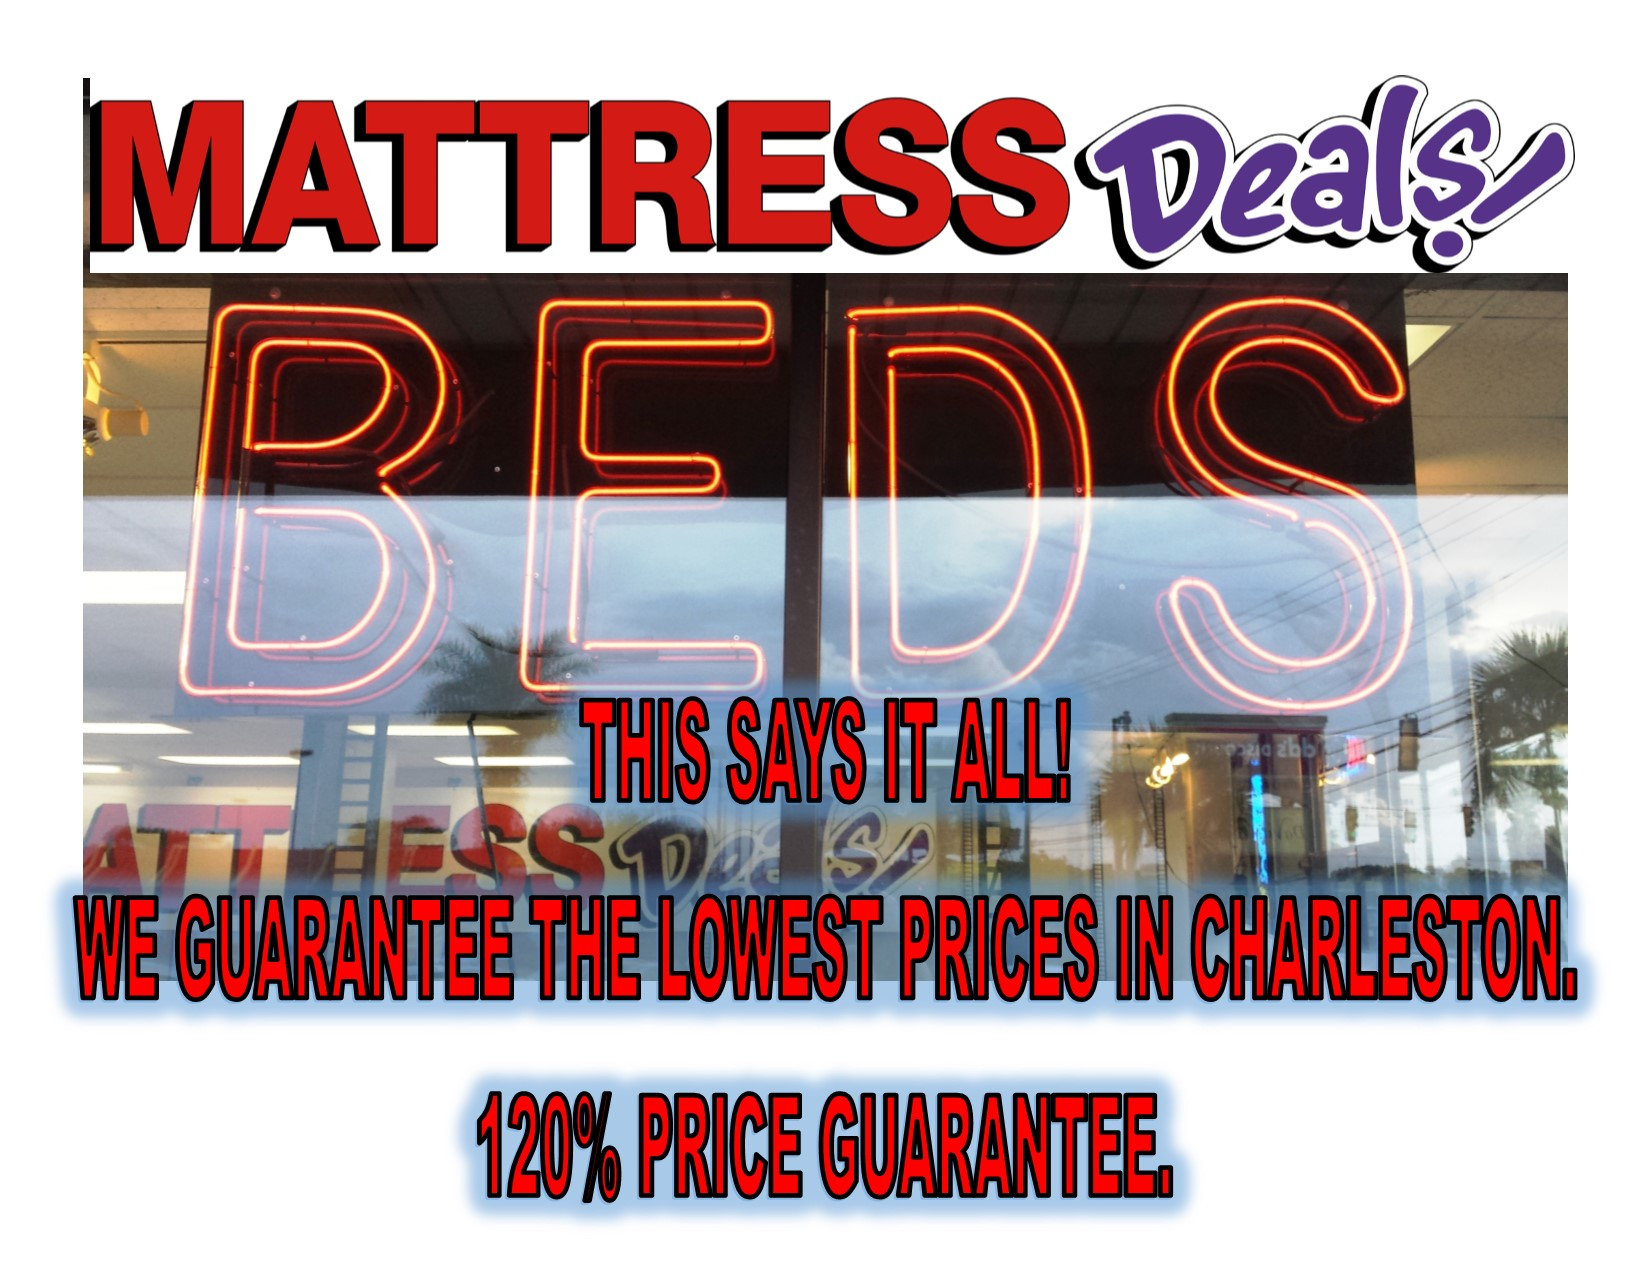 Mattress Deals image 8